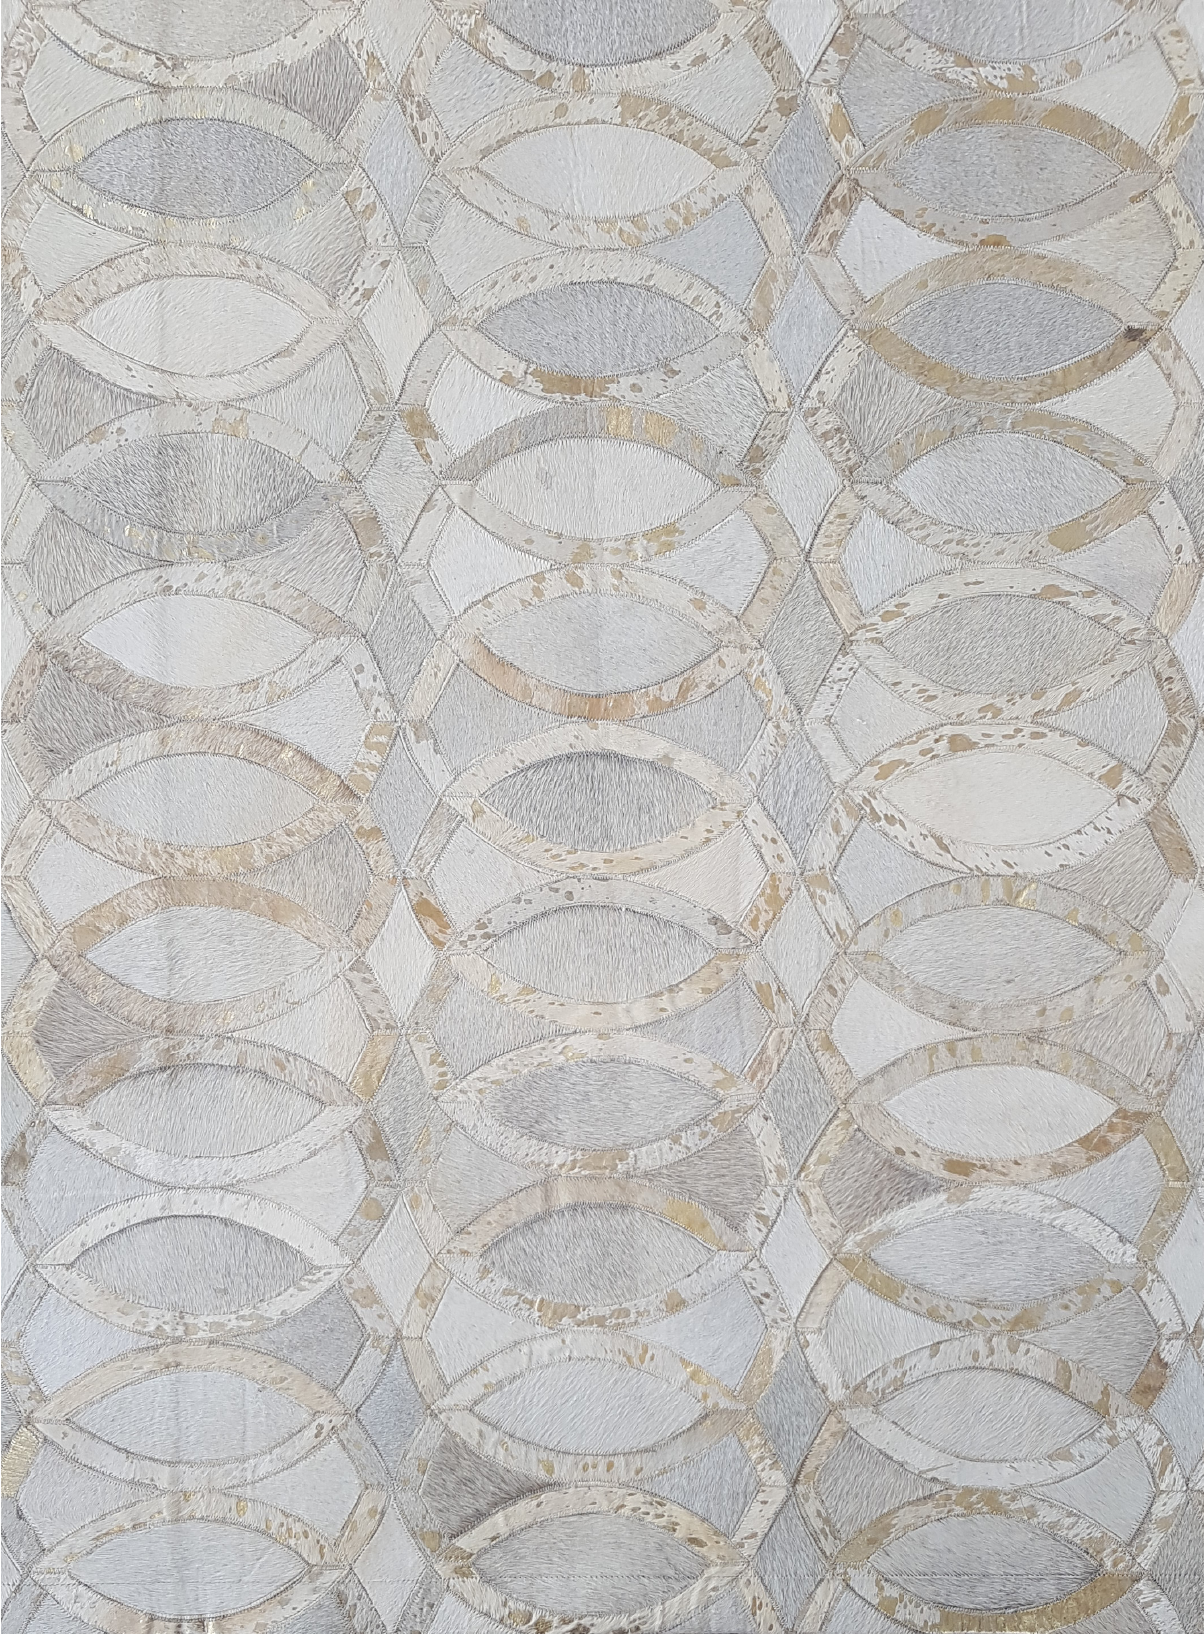 SIDNEY Handmade Area Rug [ White & Gold ] 9.5 x 12 Ft.